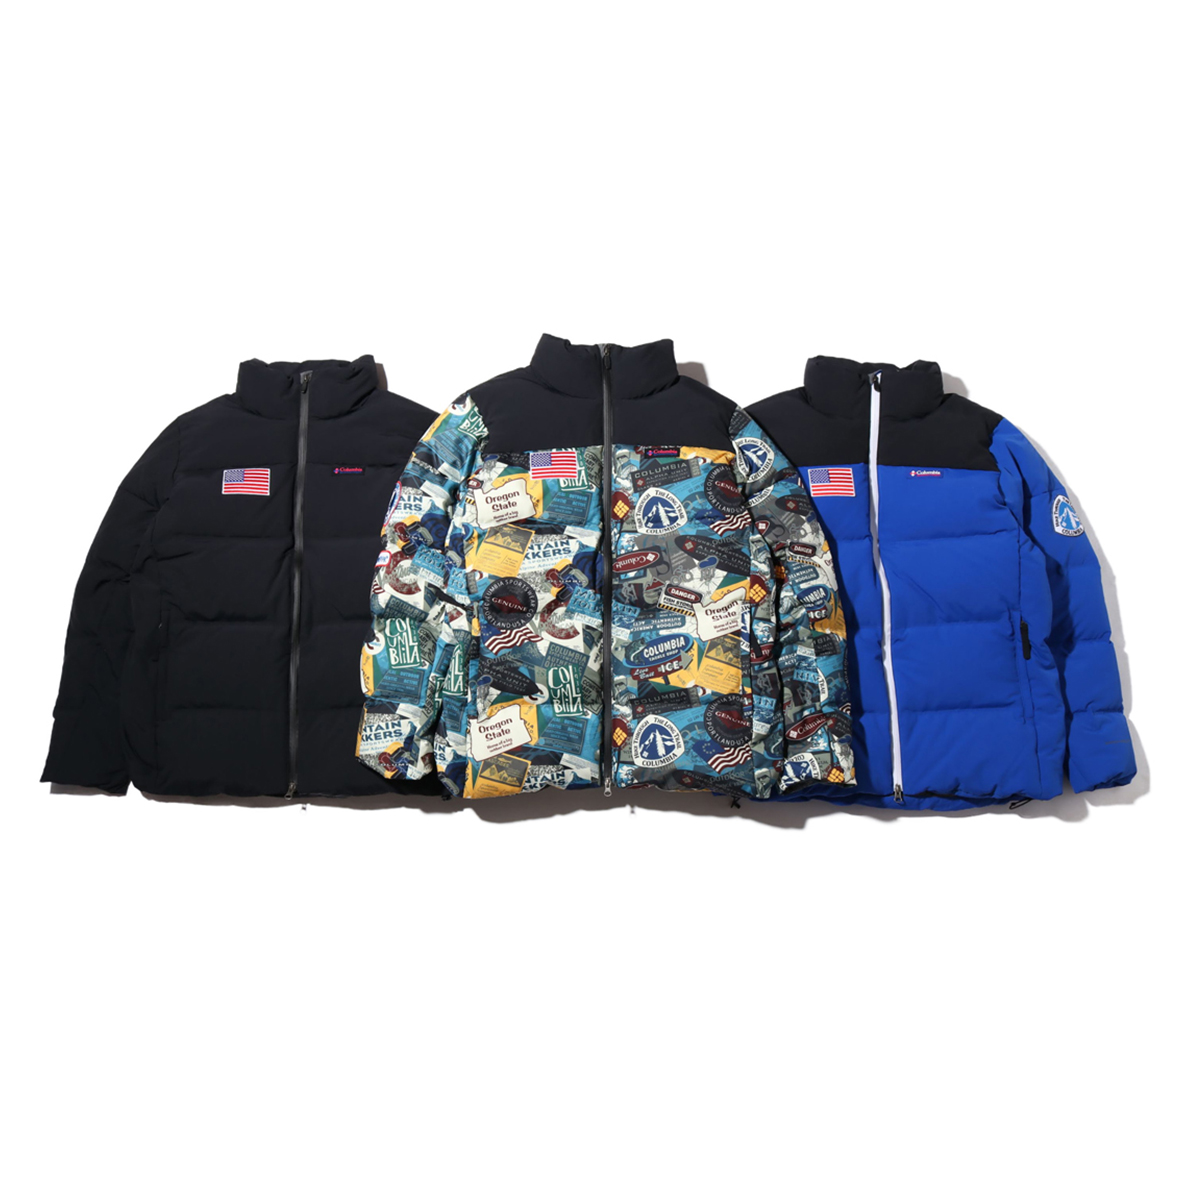 Columbia x atmos lab KingstonCanal™TextJacket